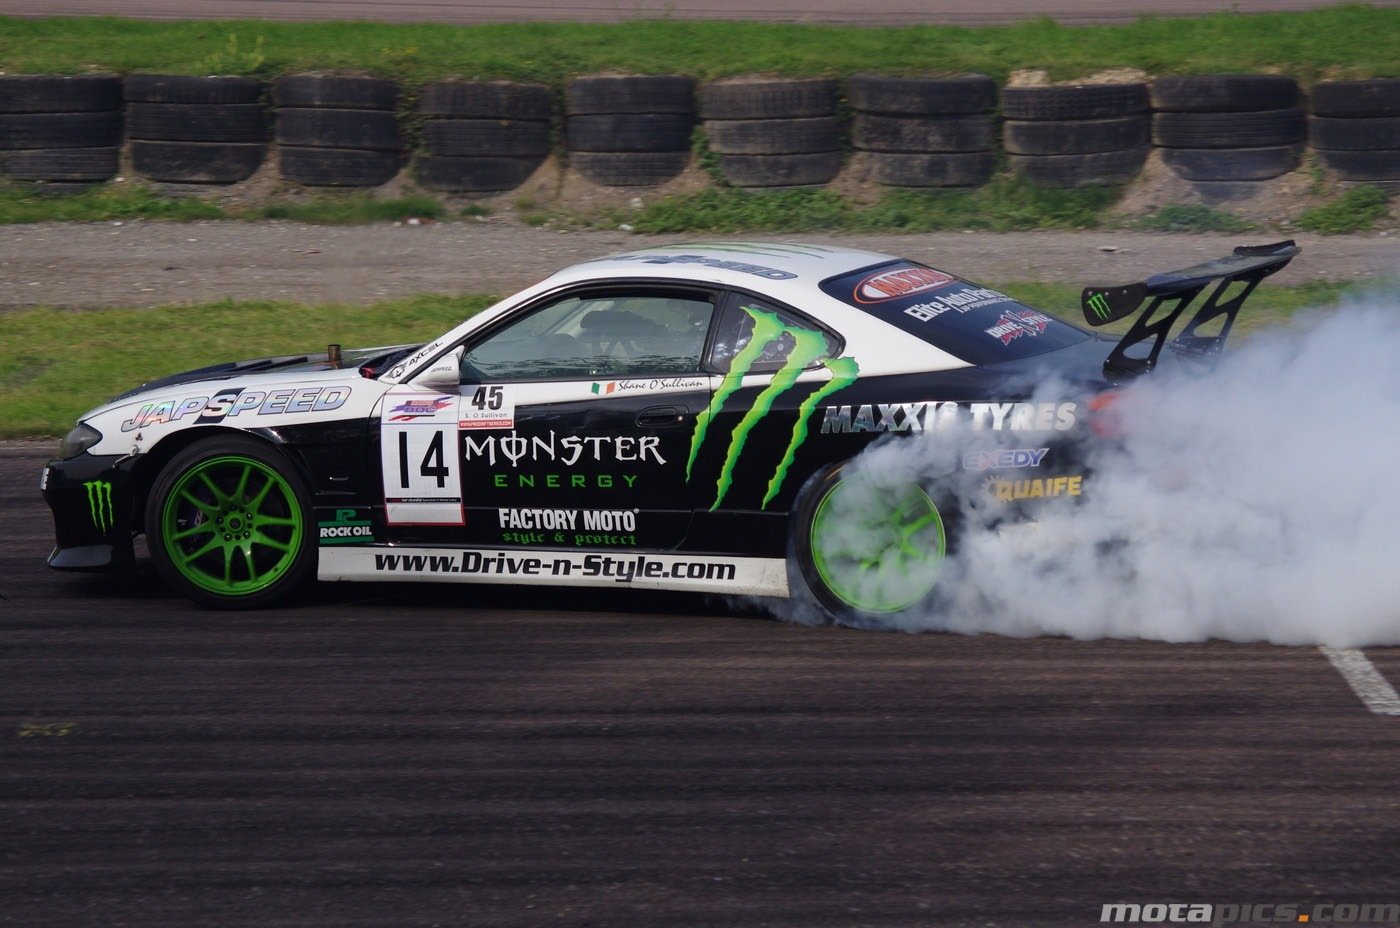 motapics-wallpaper-drifting-nissan-silva-monster_1400px.jpg